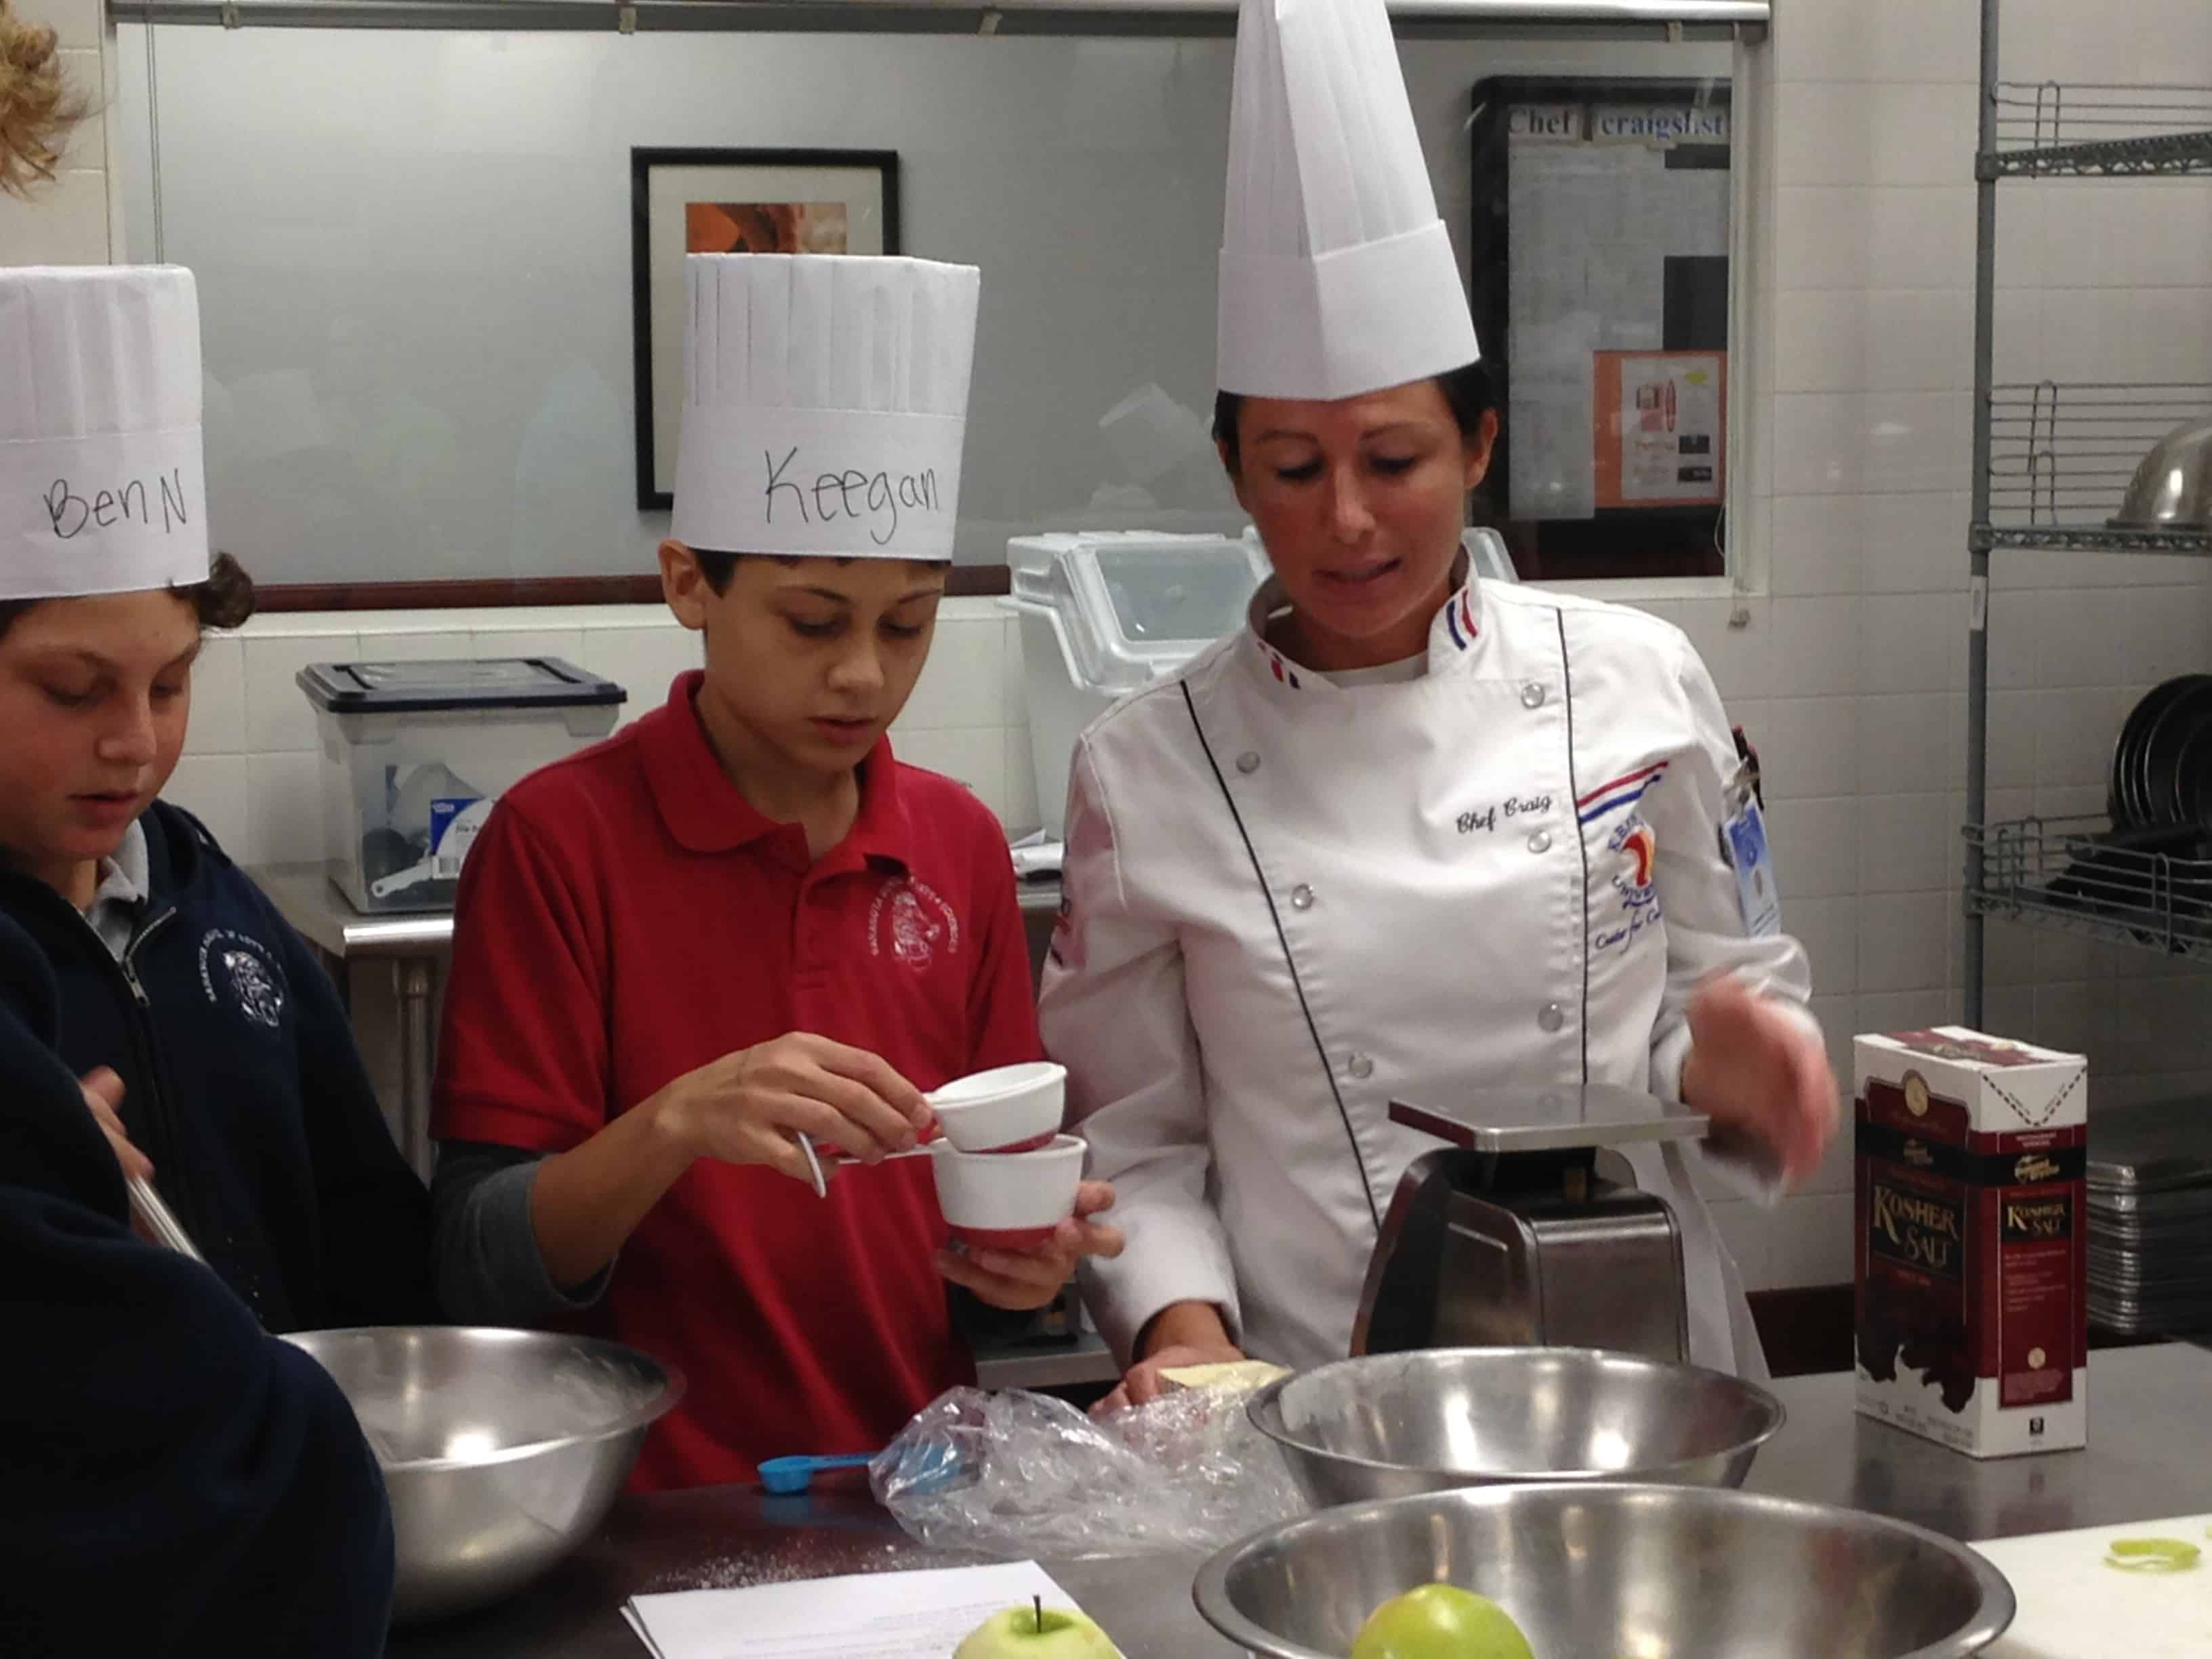 Center for Culinary Arts in Sarasota Hosted a Childhood Nutrition Day Event